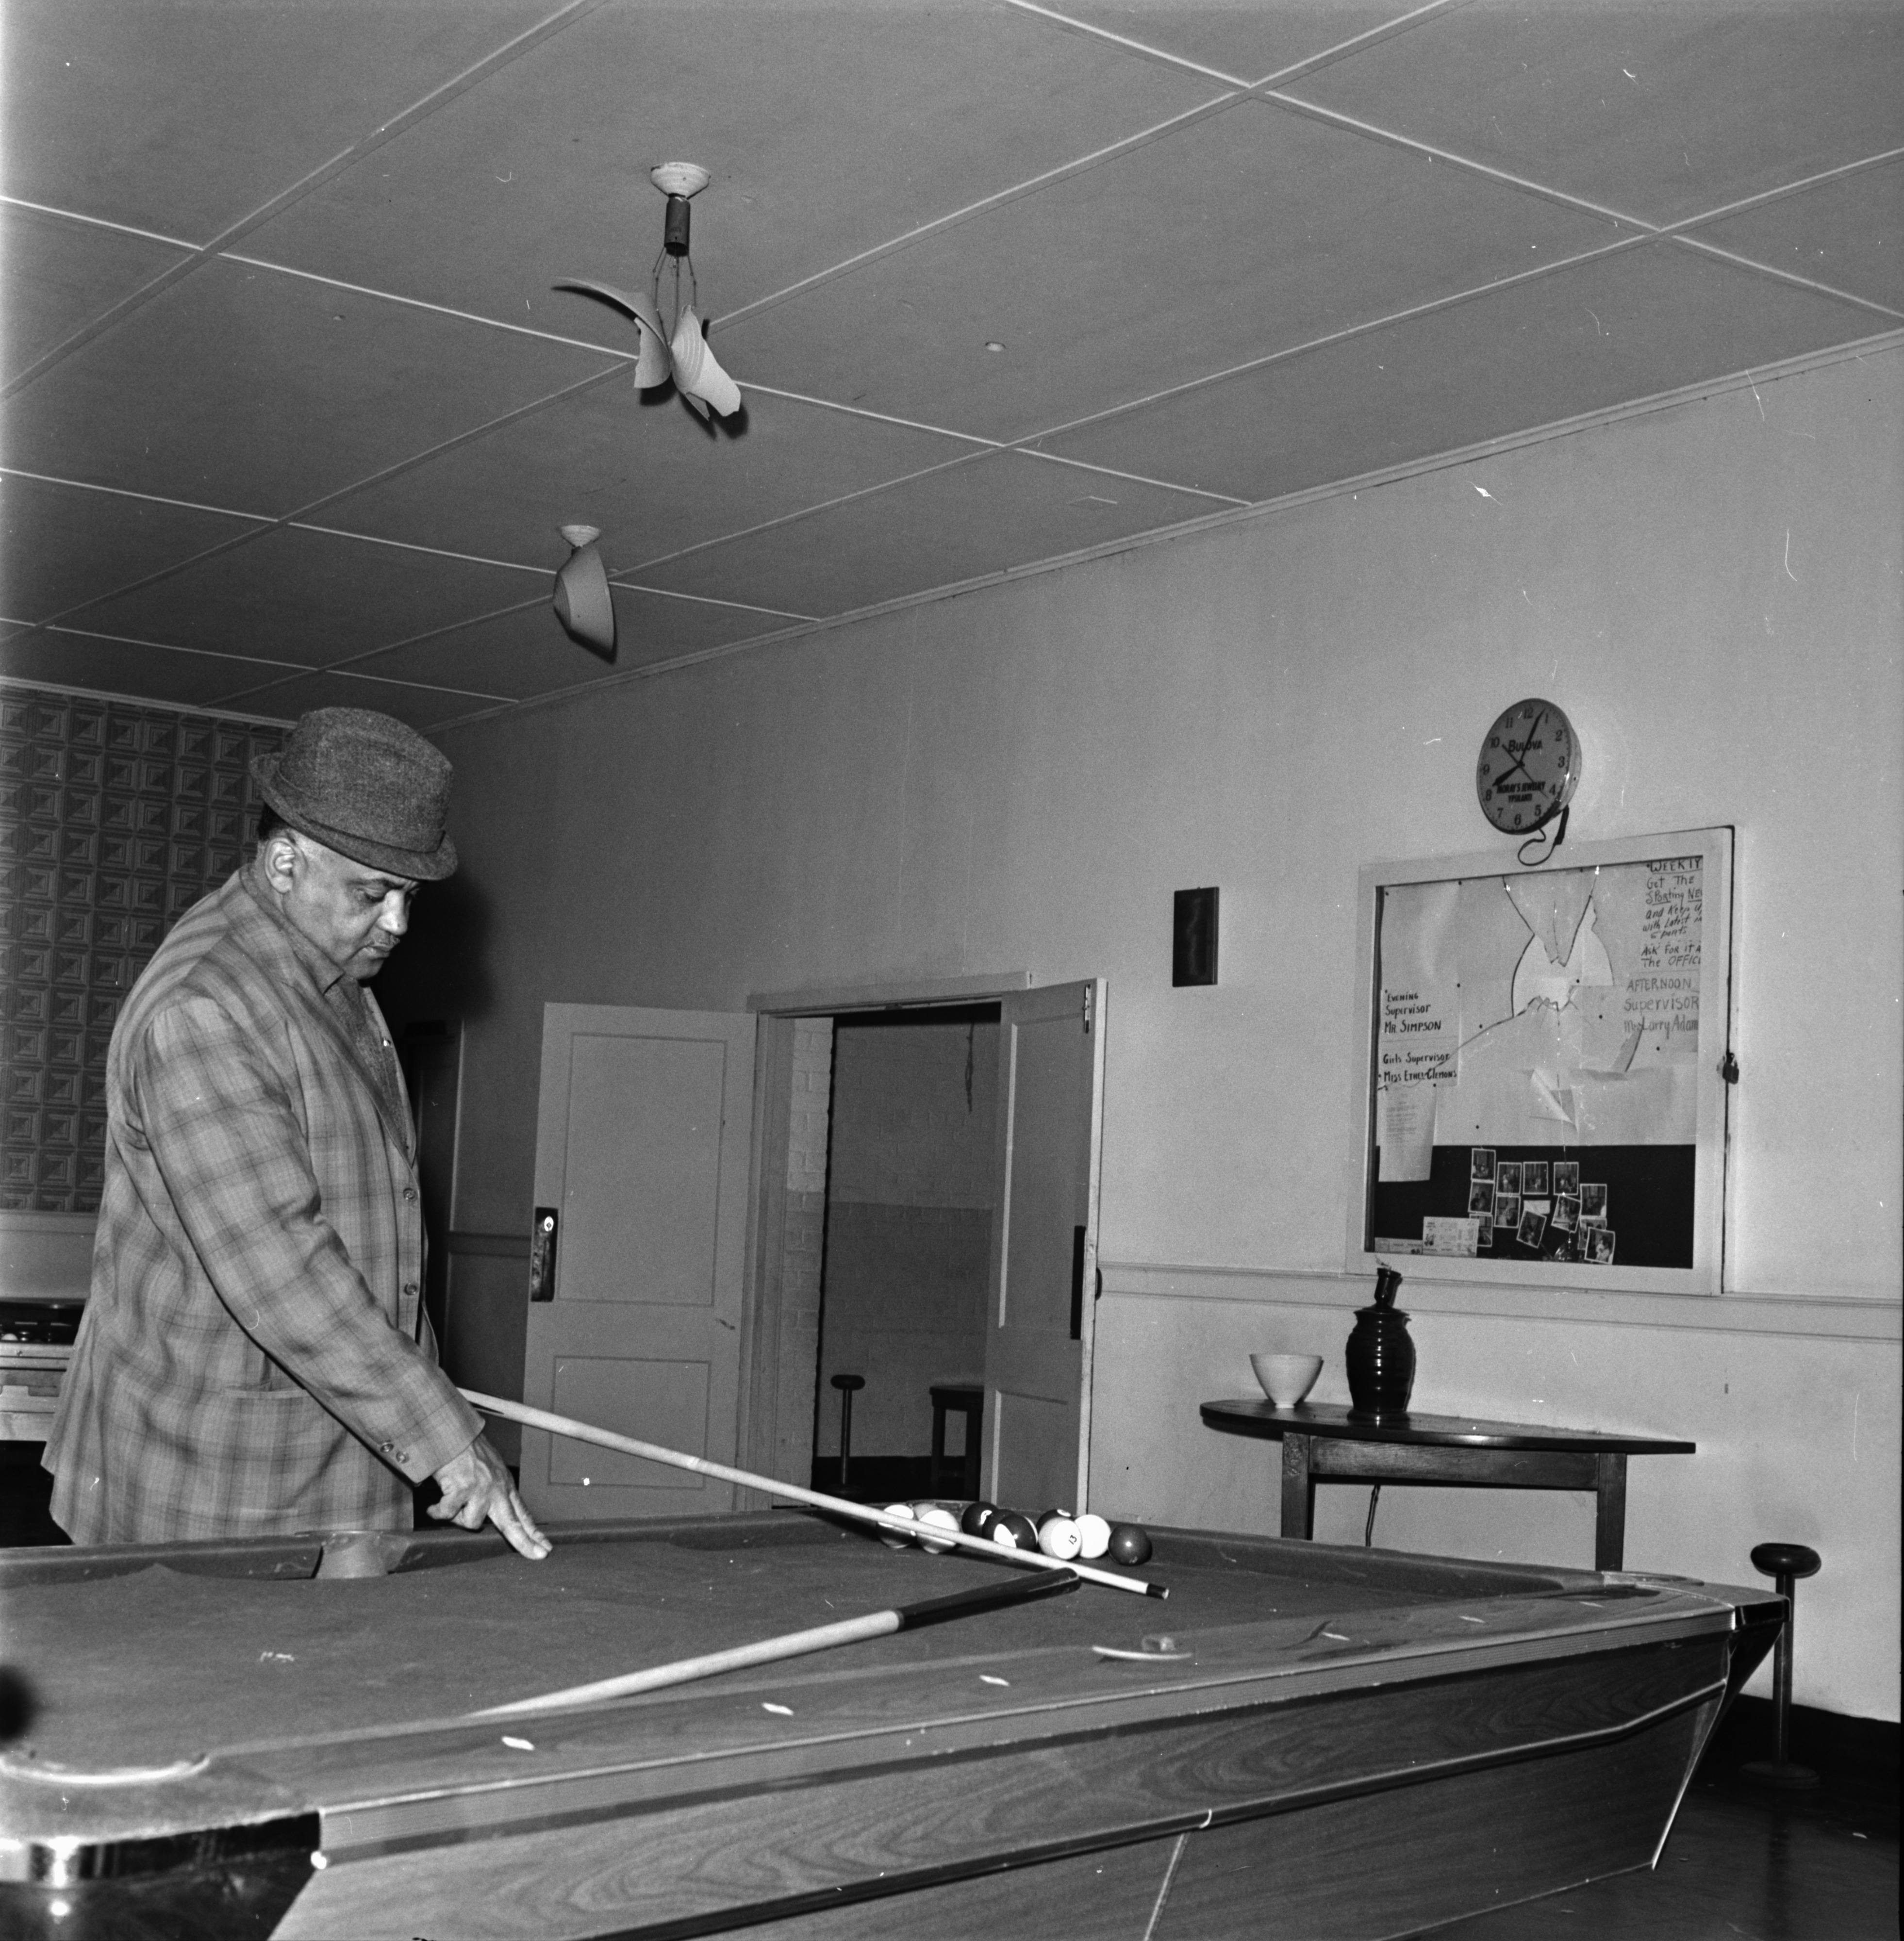 Surveying Damage from Vandalism at Parkridge Community Center, October 1967 image